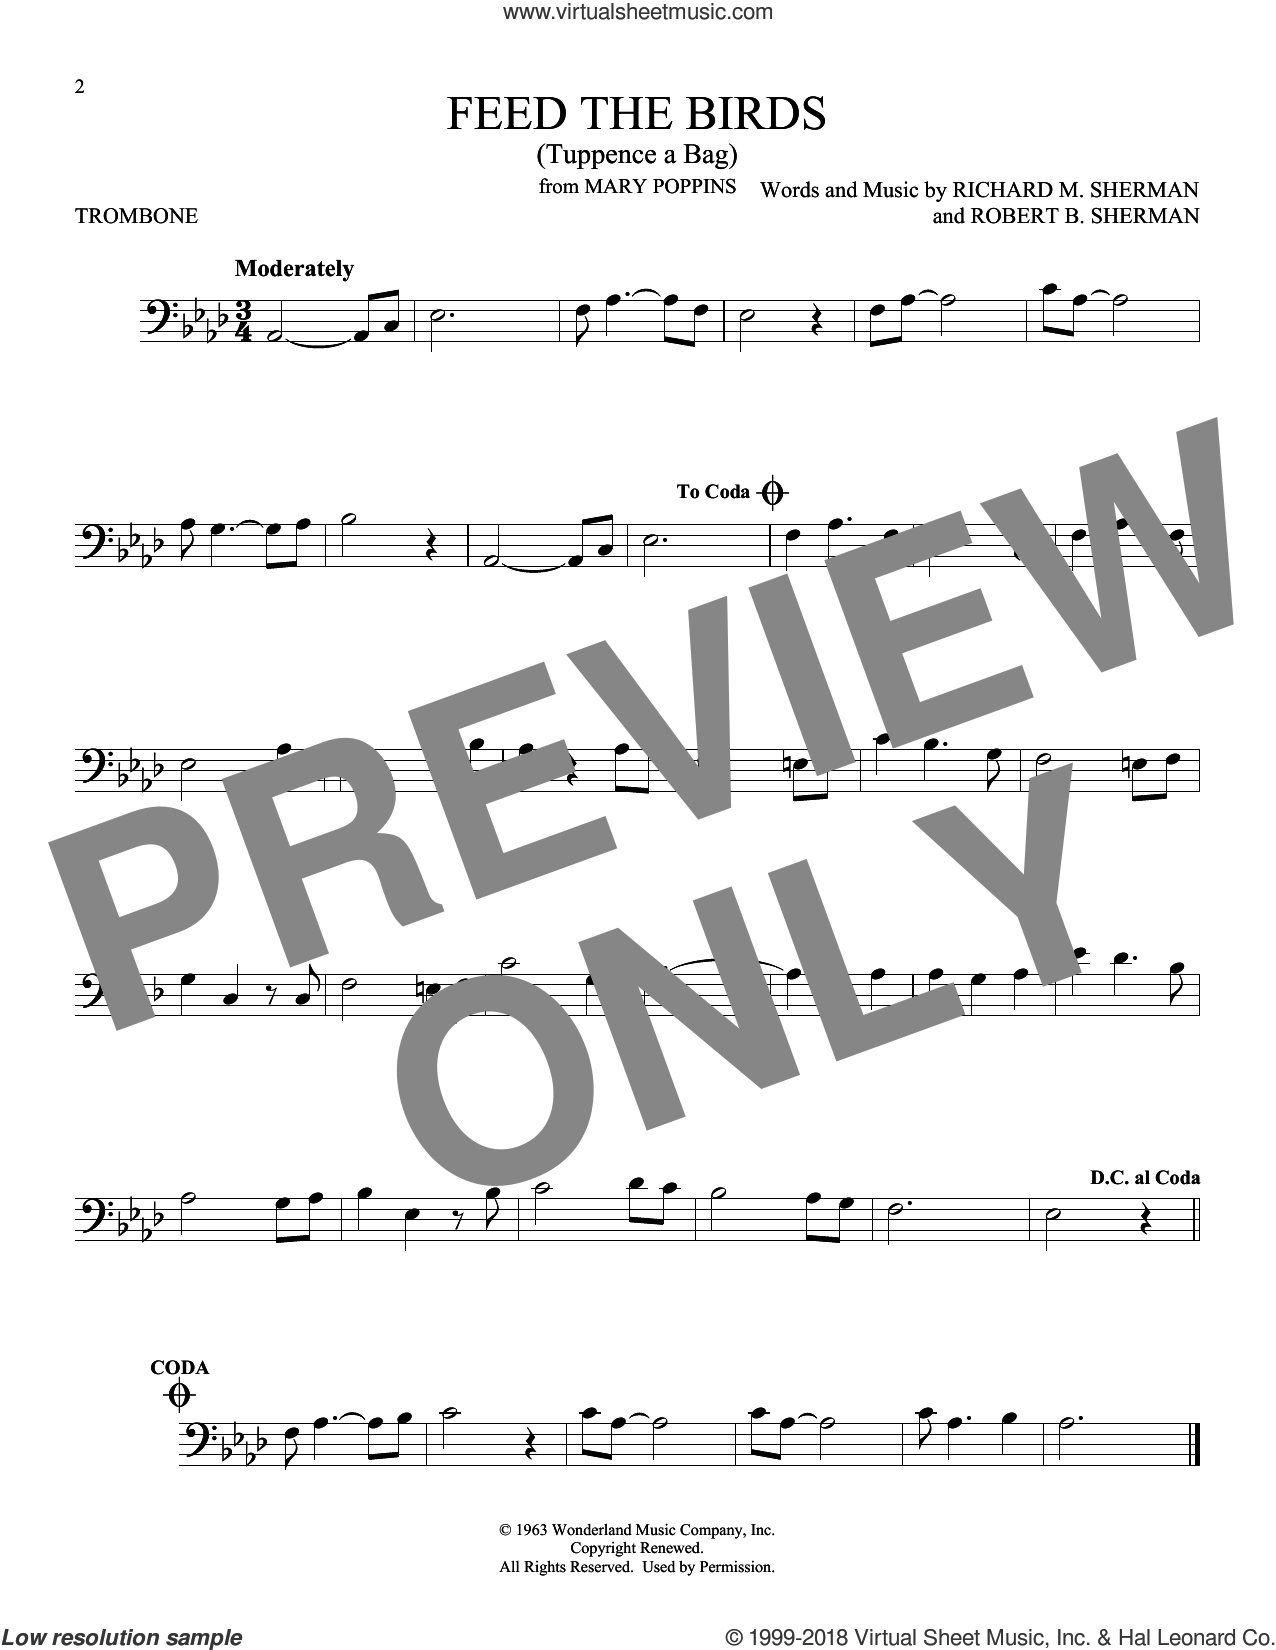 Feed The Birds (Tuppence A Bag) sheet music for trombone solo by Richard M. Sherman and Robert B. Sherman, intermediate skill level